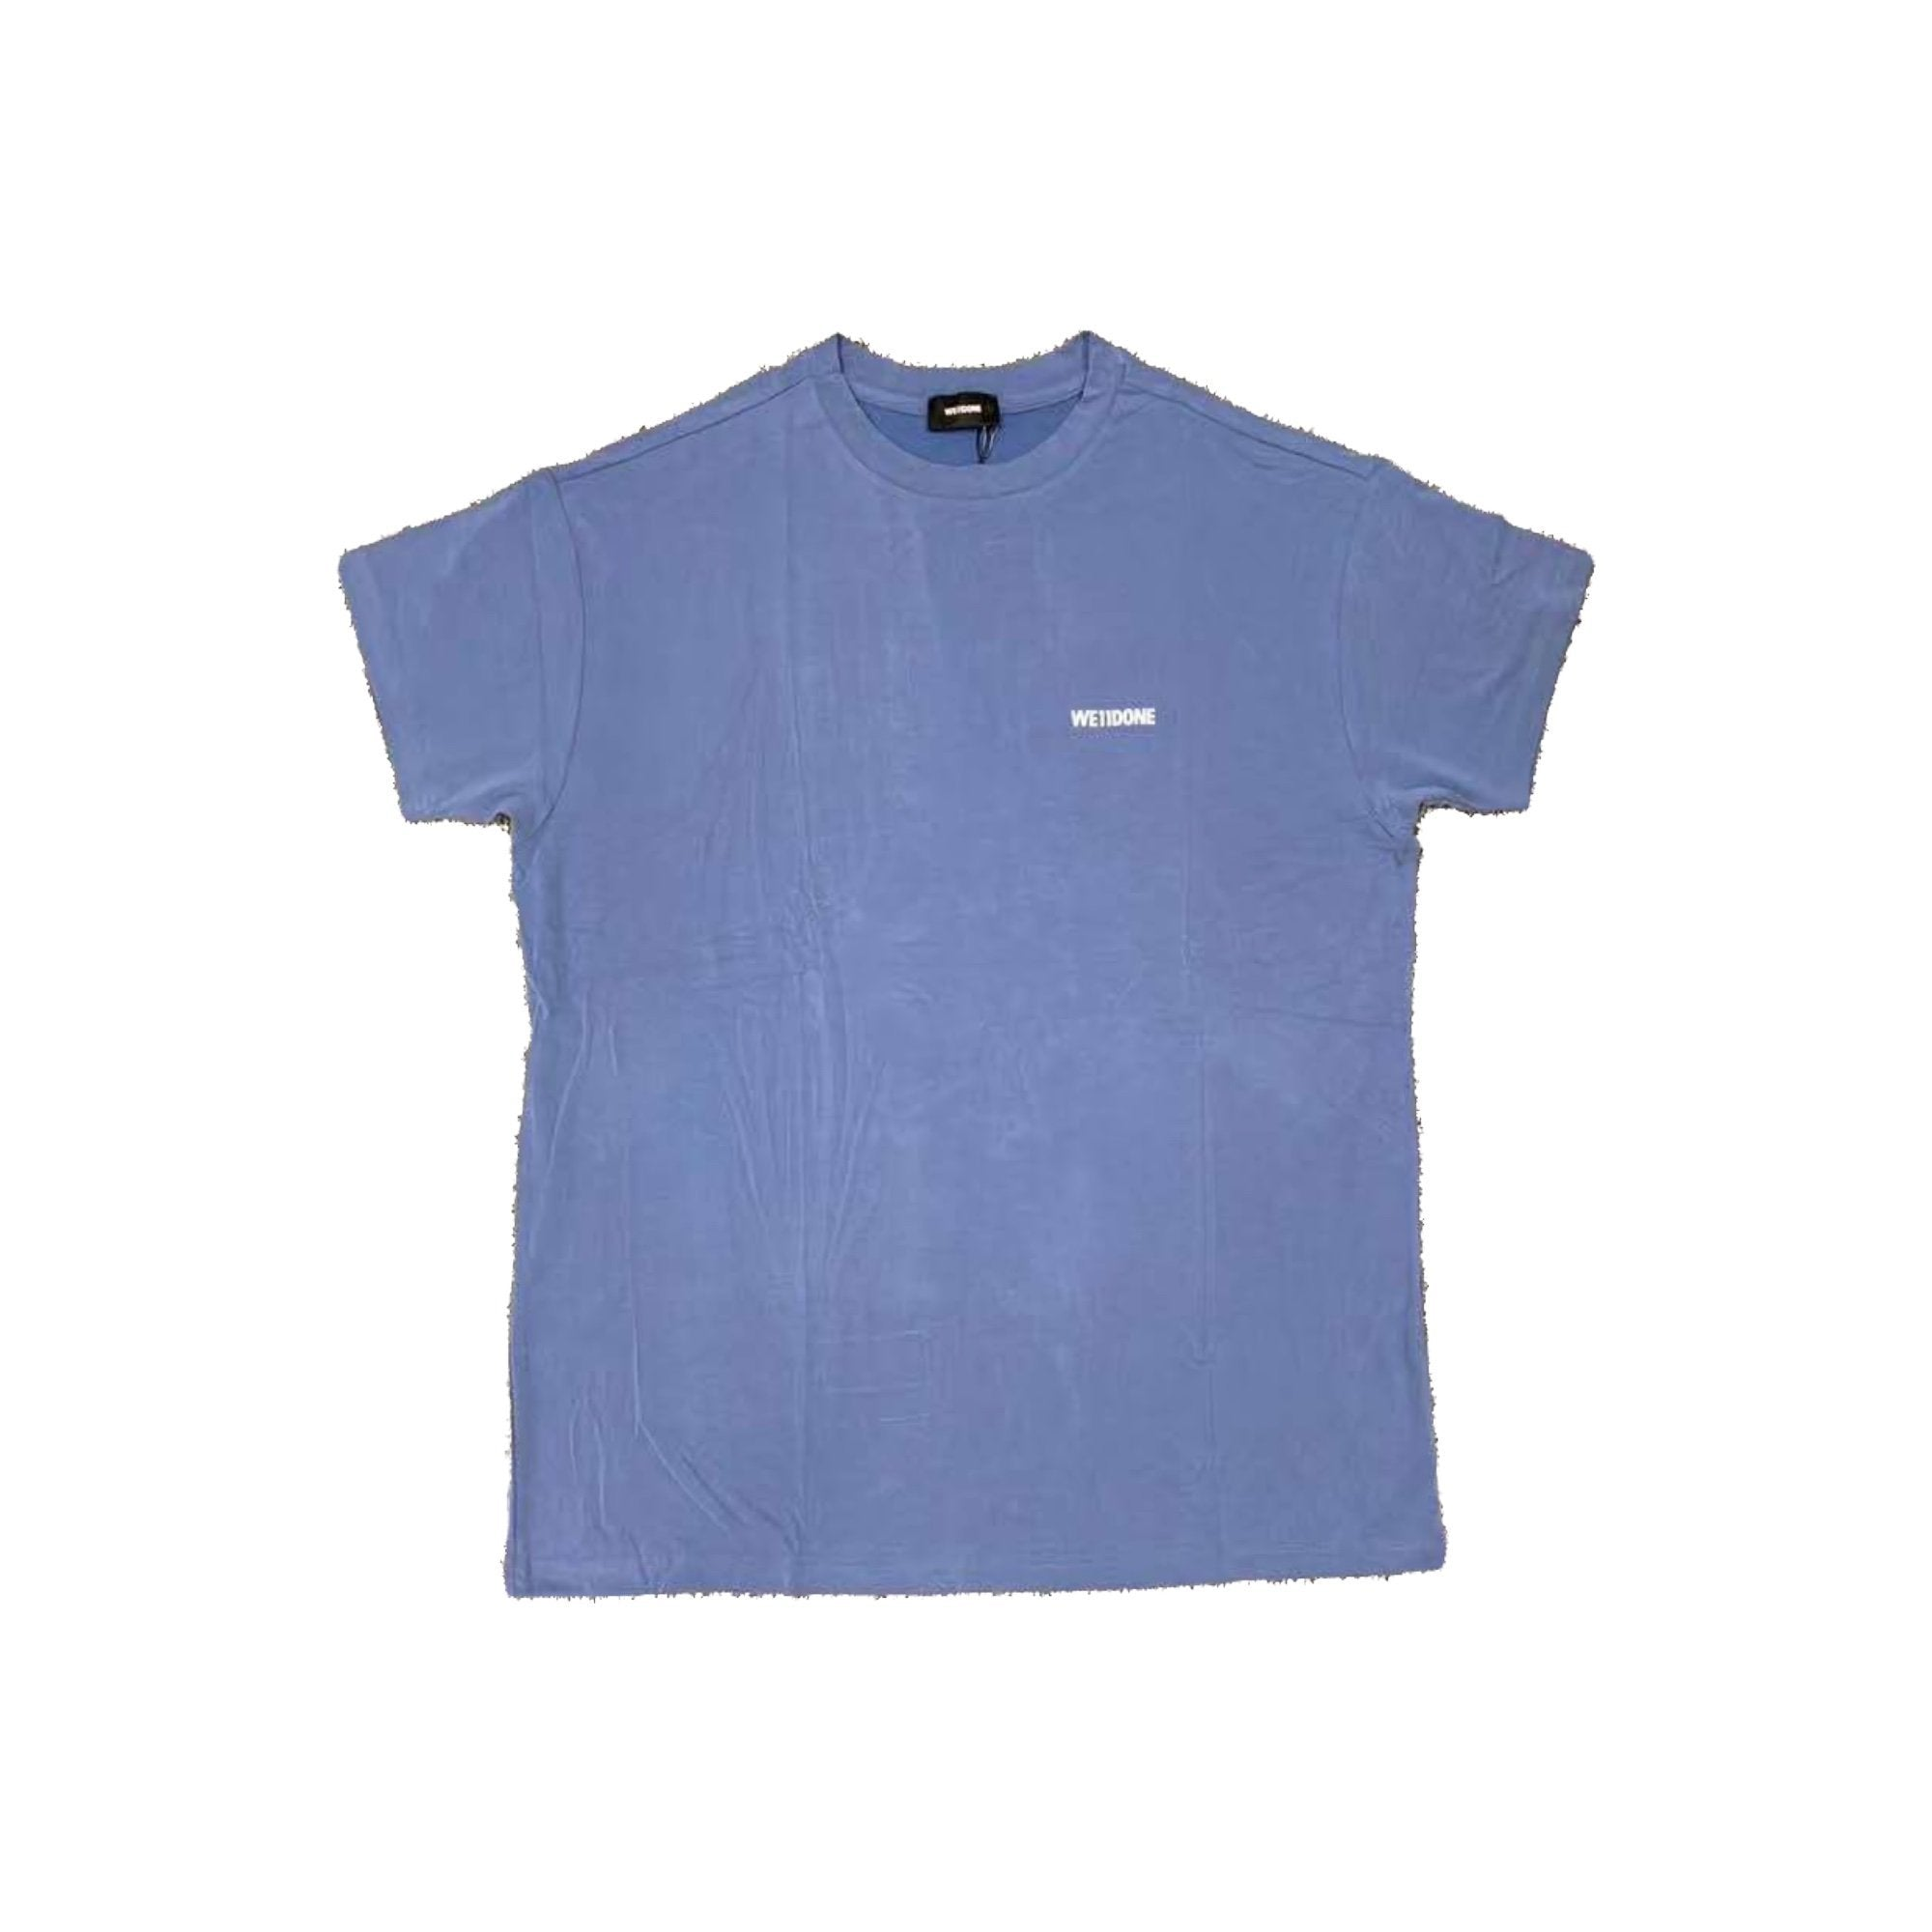 WE11DONE Blue Logo Print Tee | MADA IN CHINA